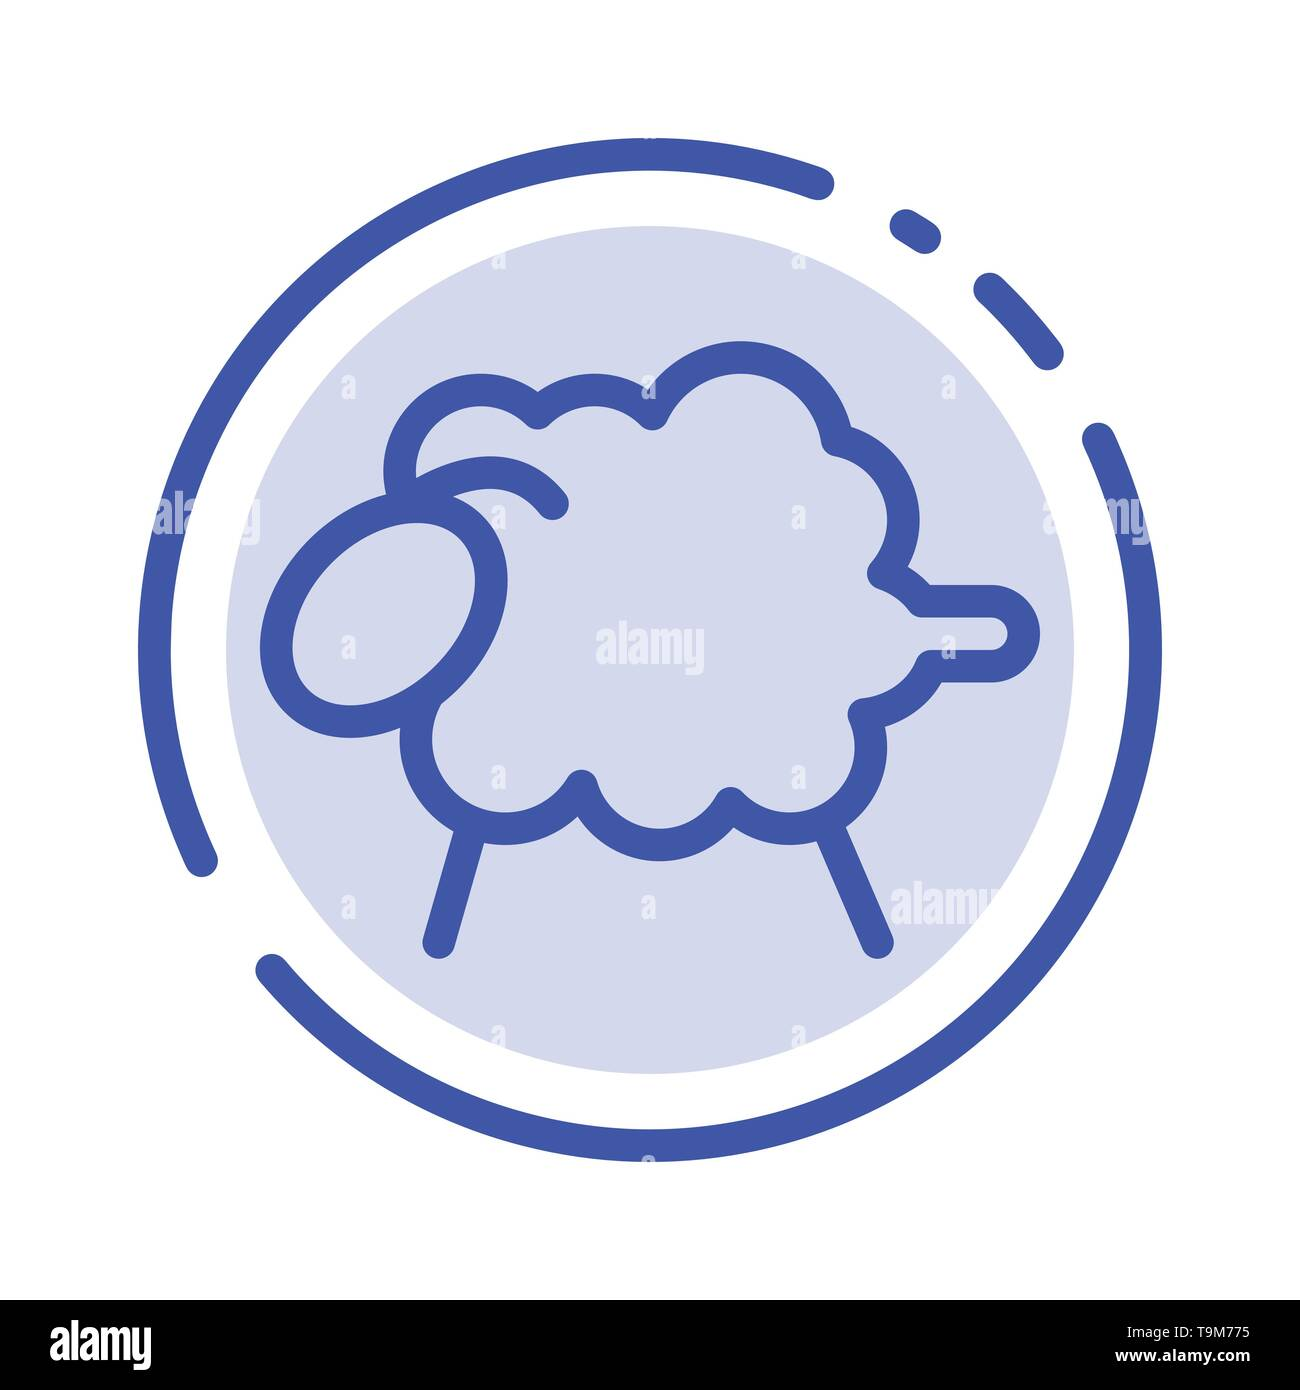 Lamb, Sheep, Wool, Easter Blue Dotted Line Line Icon - Stock Vector